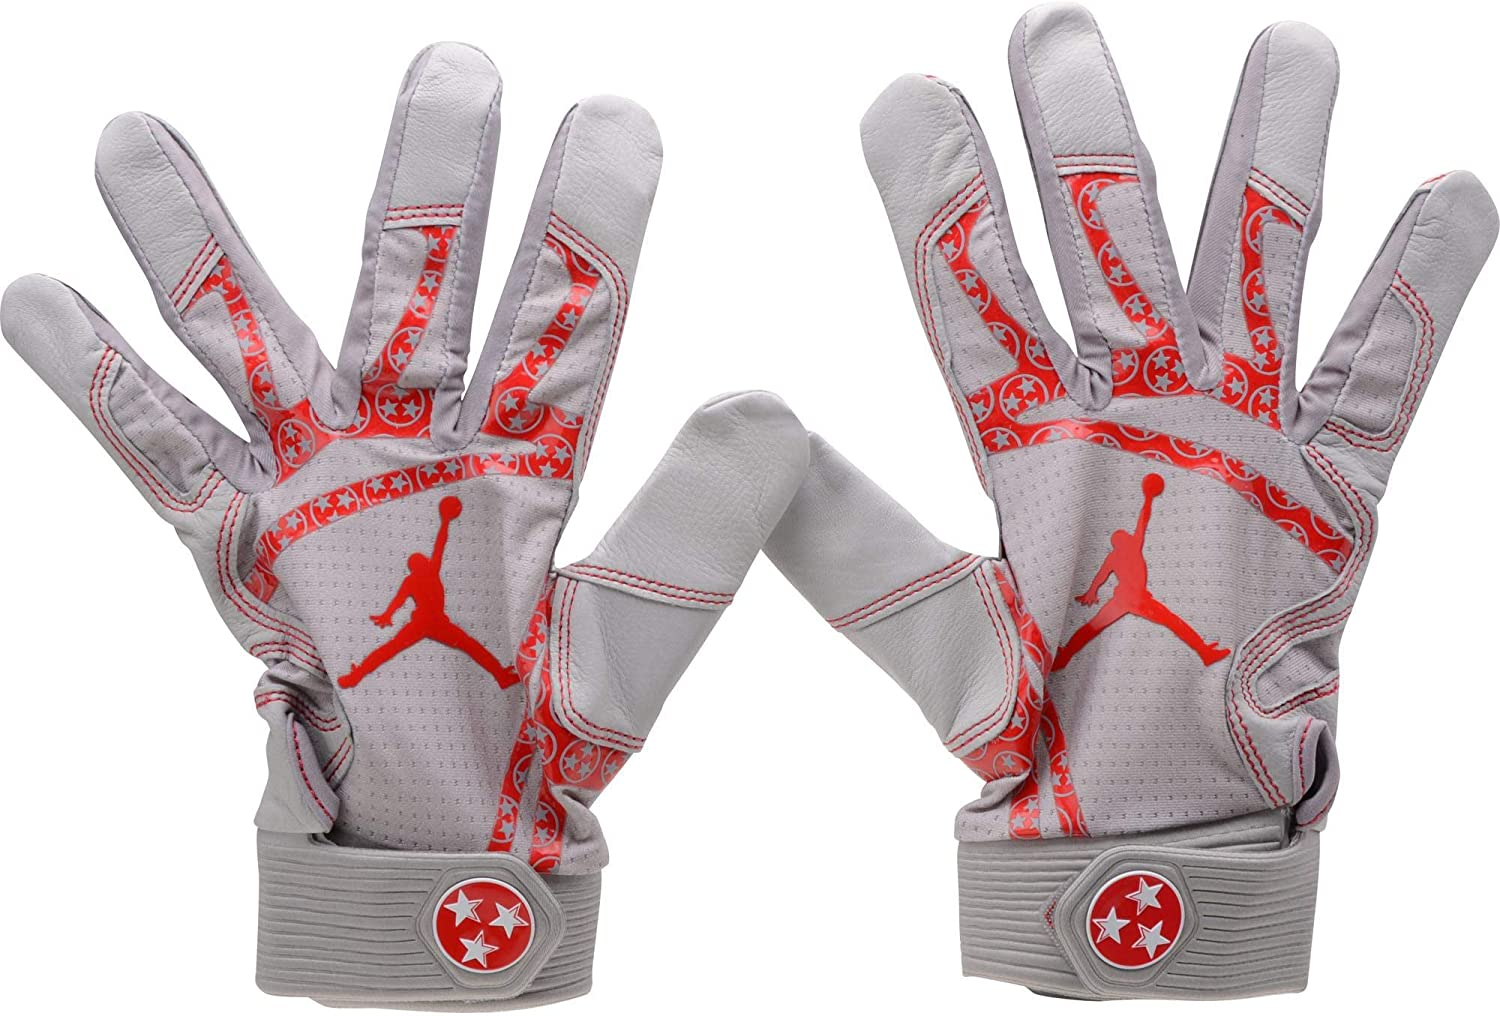 Agencia de viajes Son Interpretativo  Mookie Betts Red Sox Player-Issued Gray Jordan Batting Gloves - MLB Game  Used Gloves at Amazon's Sports Collectibles Store